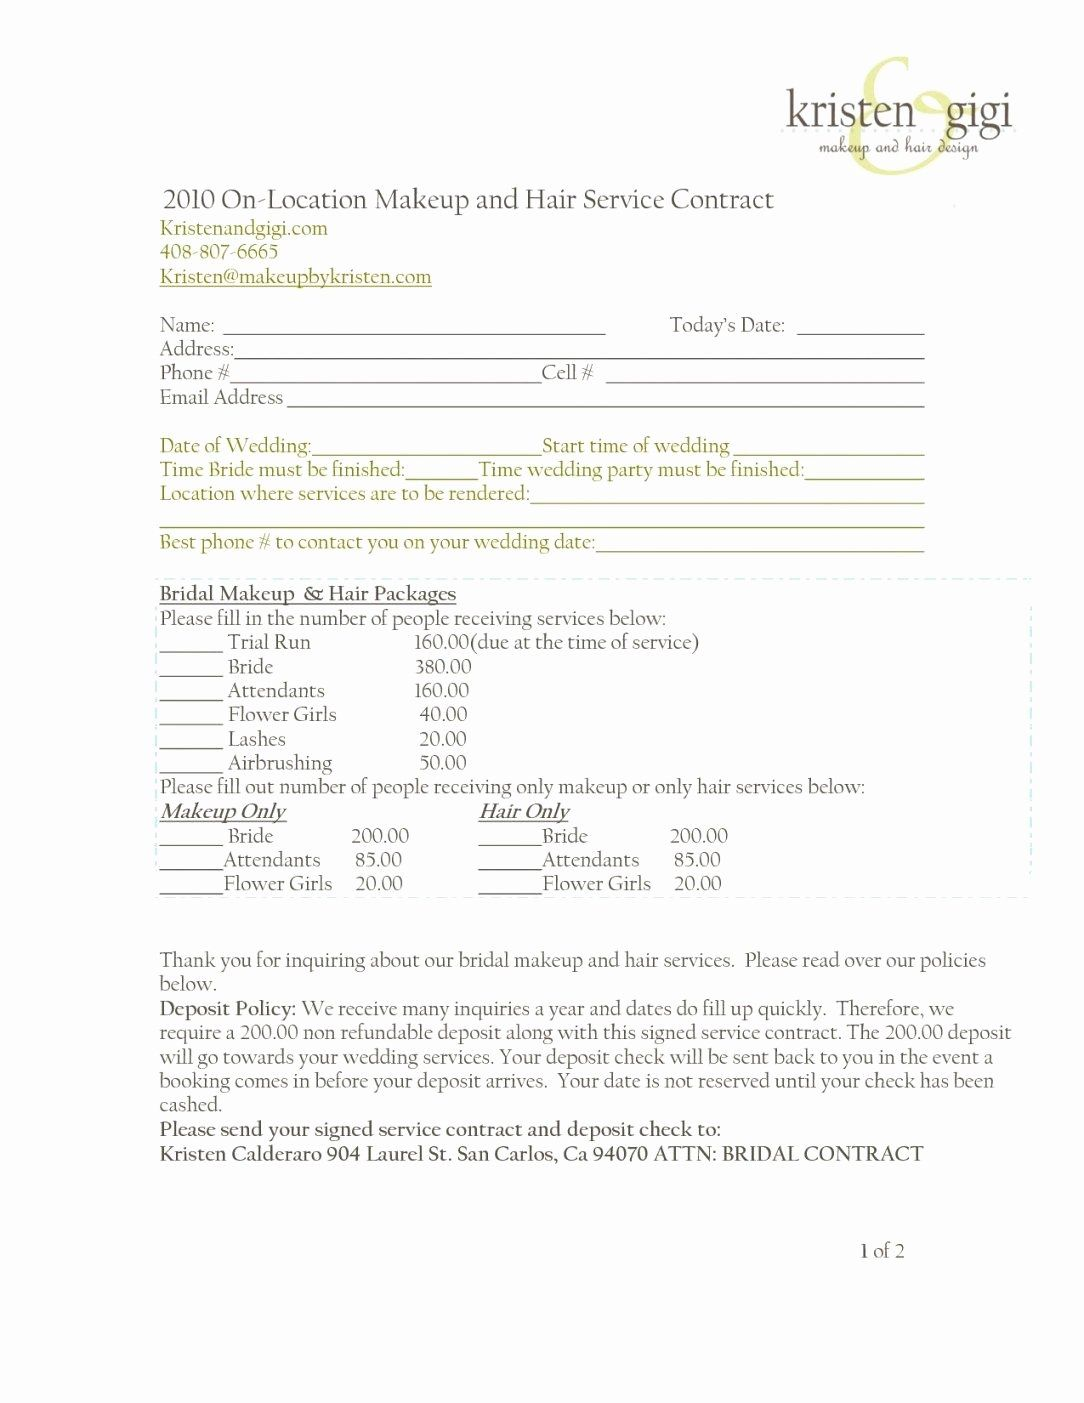 Wedding Hair And Makeup Contract Template Fresh Wedding Hair And Makeup Contract Template Wedding Hair And Makeup Freelance Makeup Freelance Makeup Artist